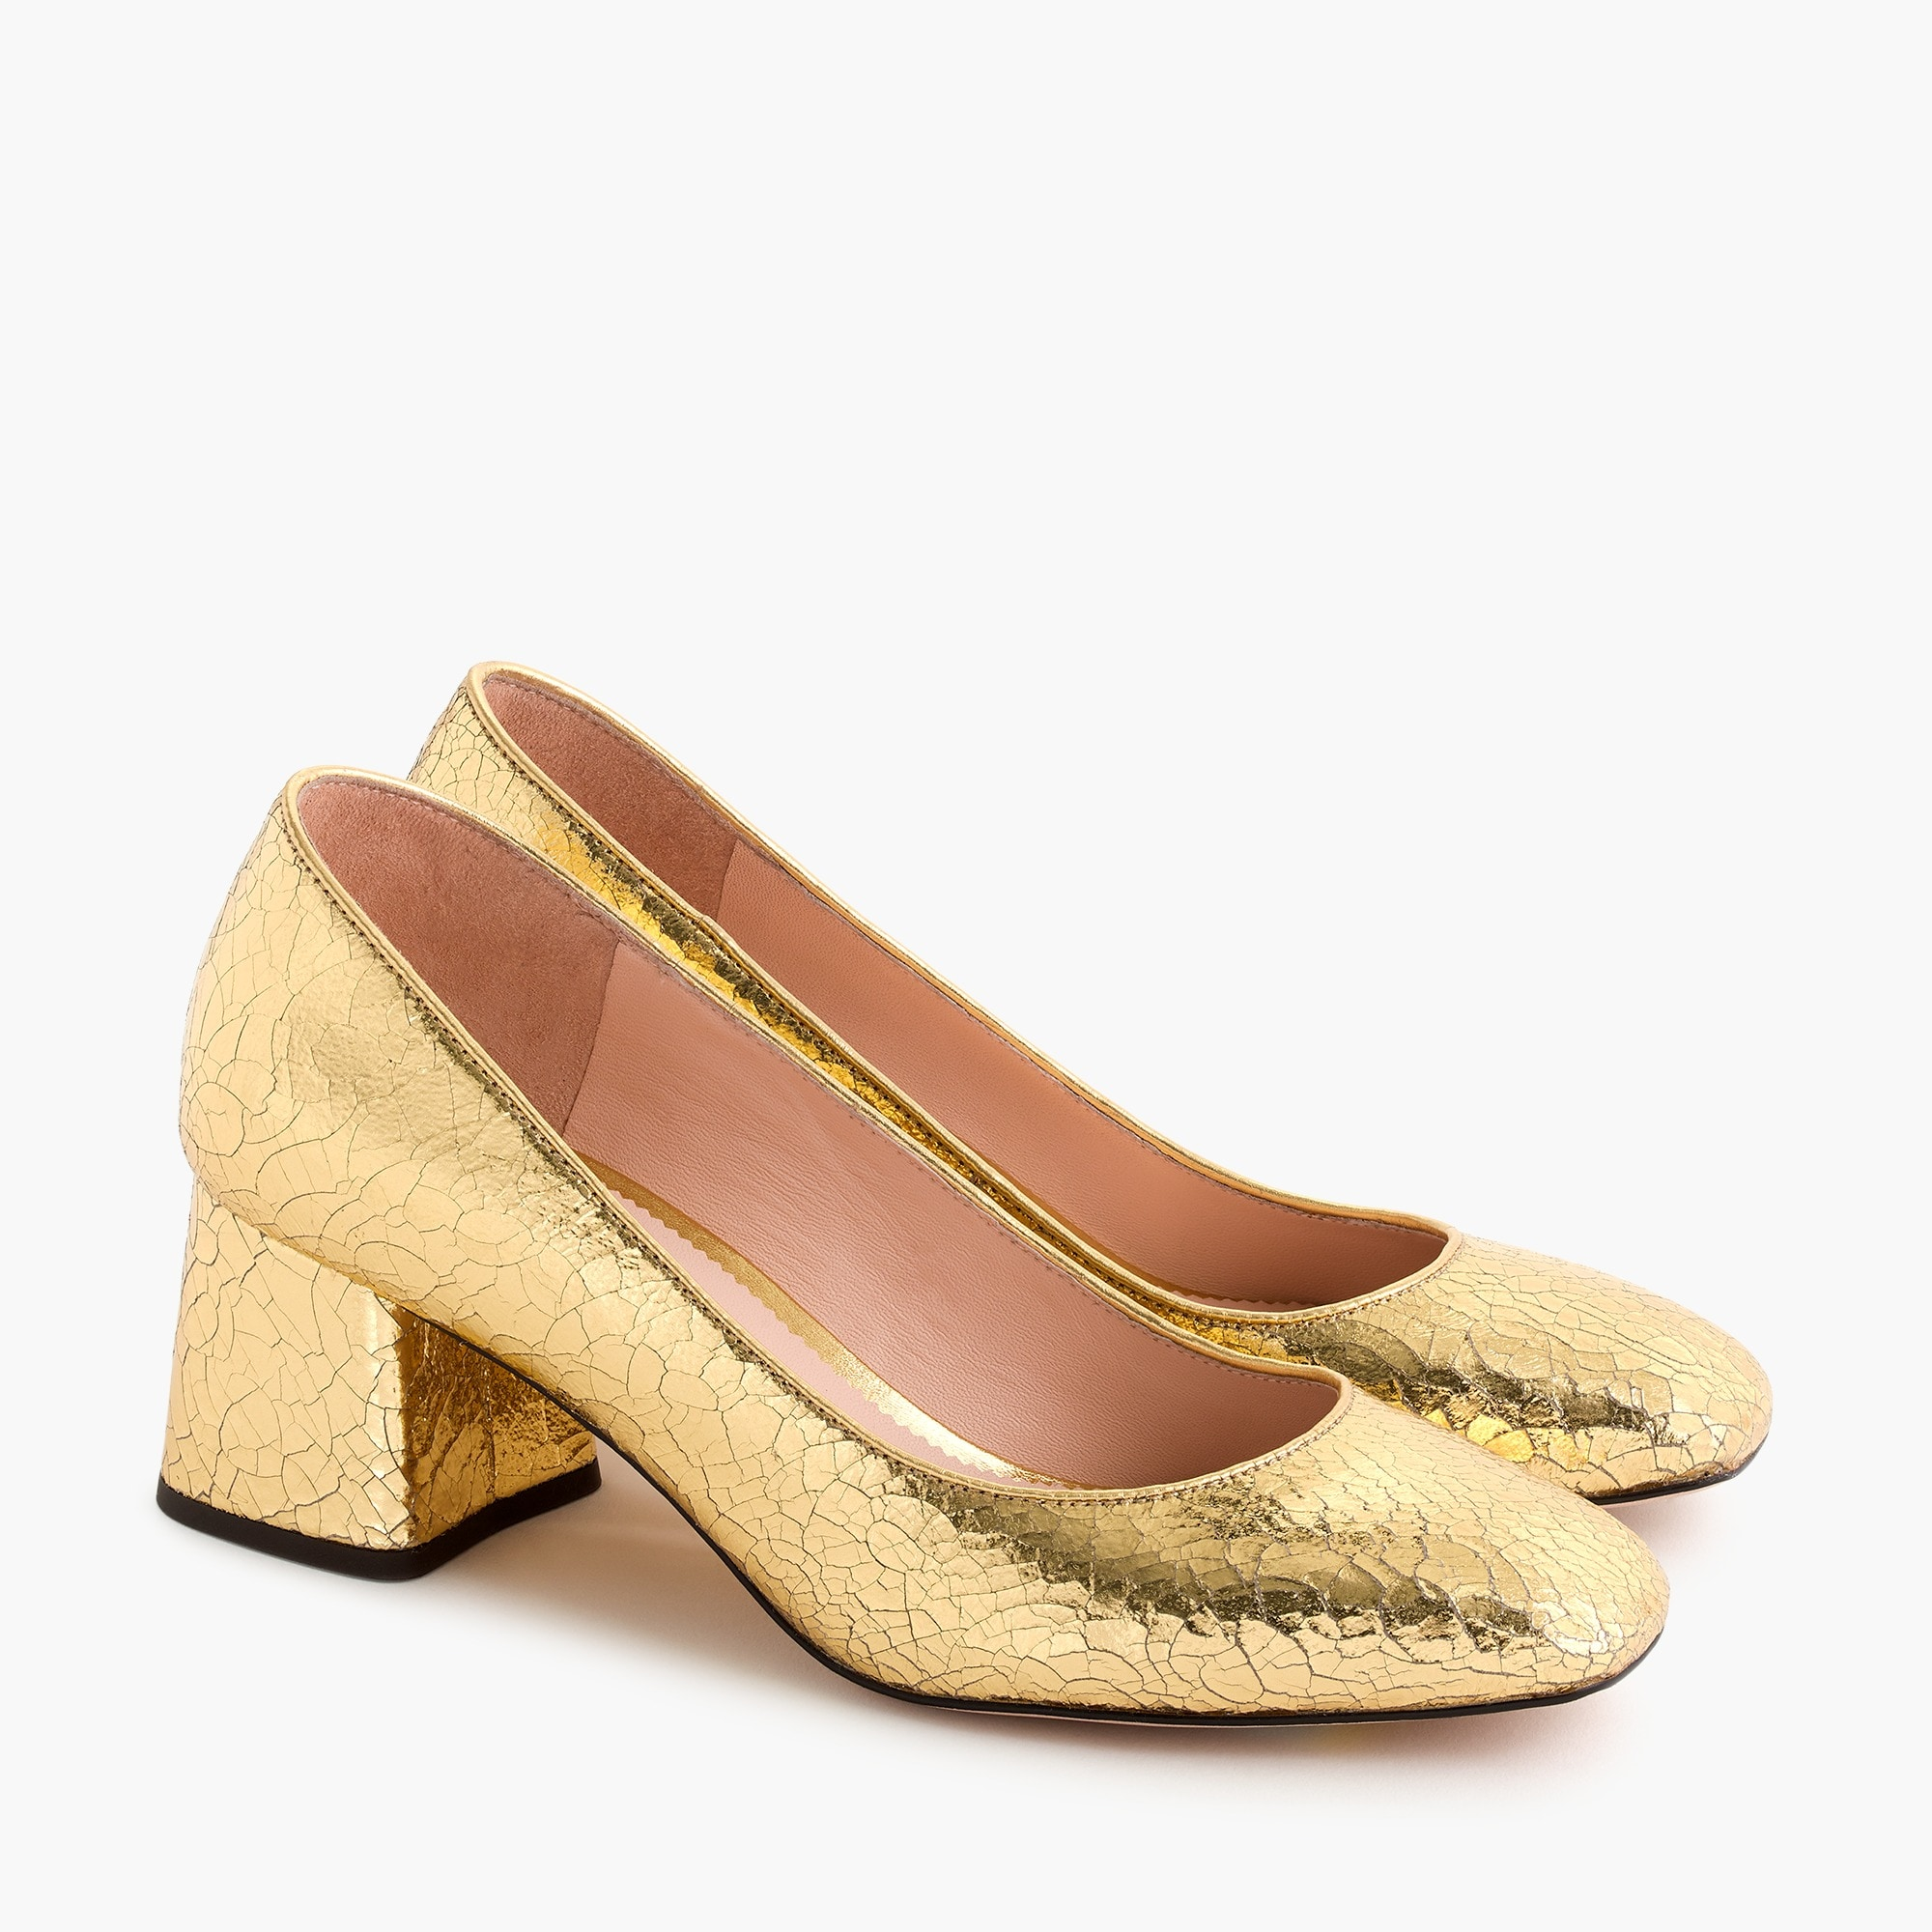 womens Block-heel pumps in cracked metallic leather